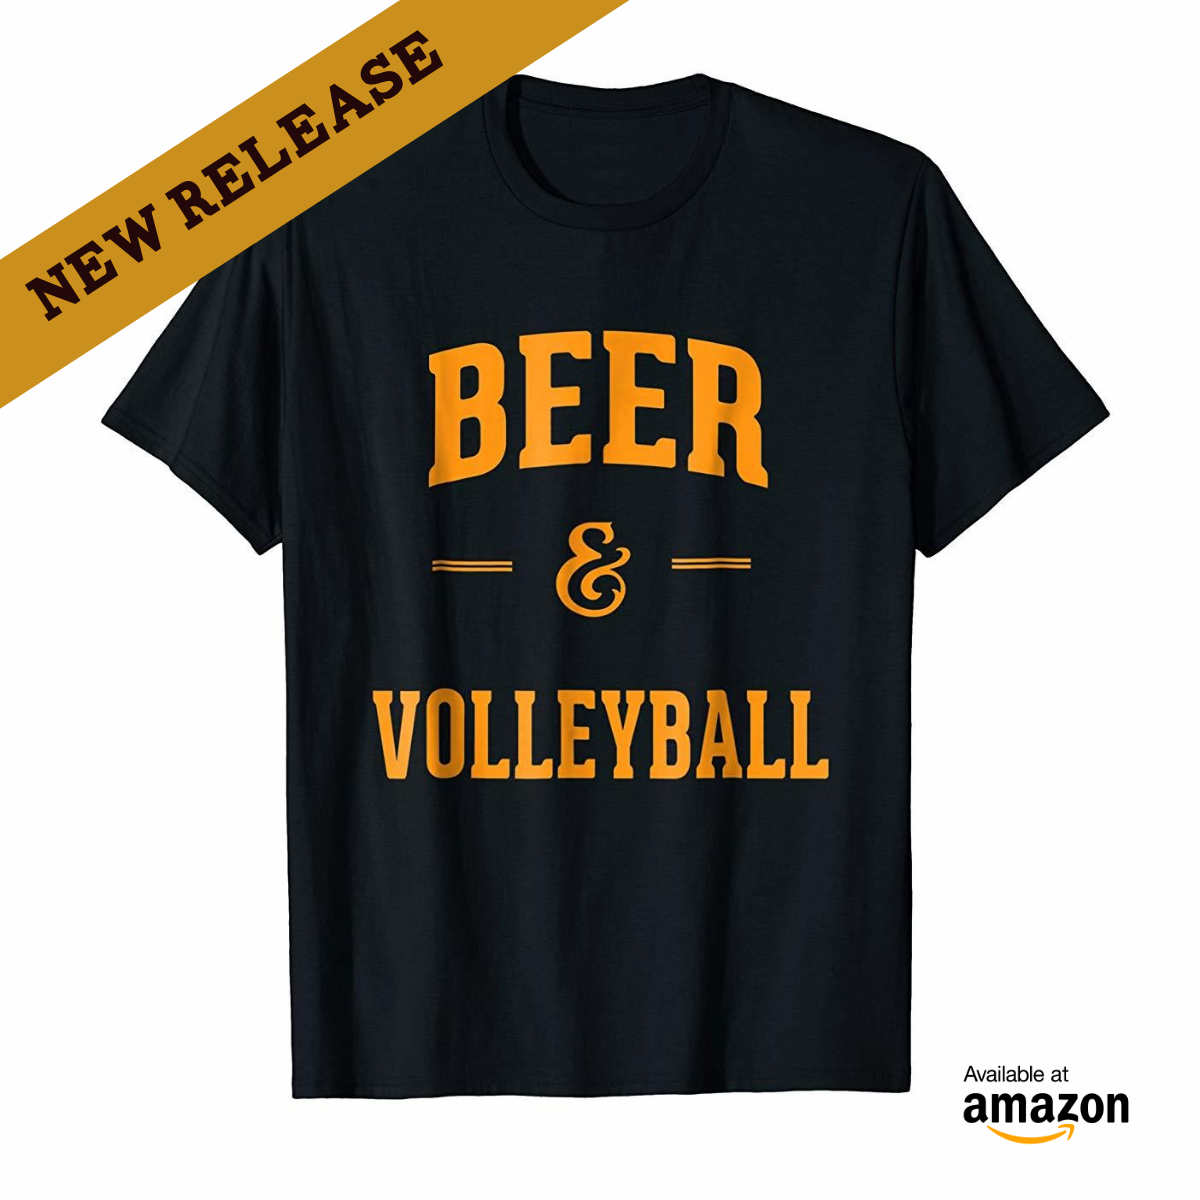 Beer & Volleyball Shirt Perfect Funny Volleyball Fans